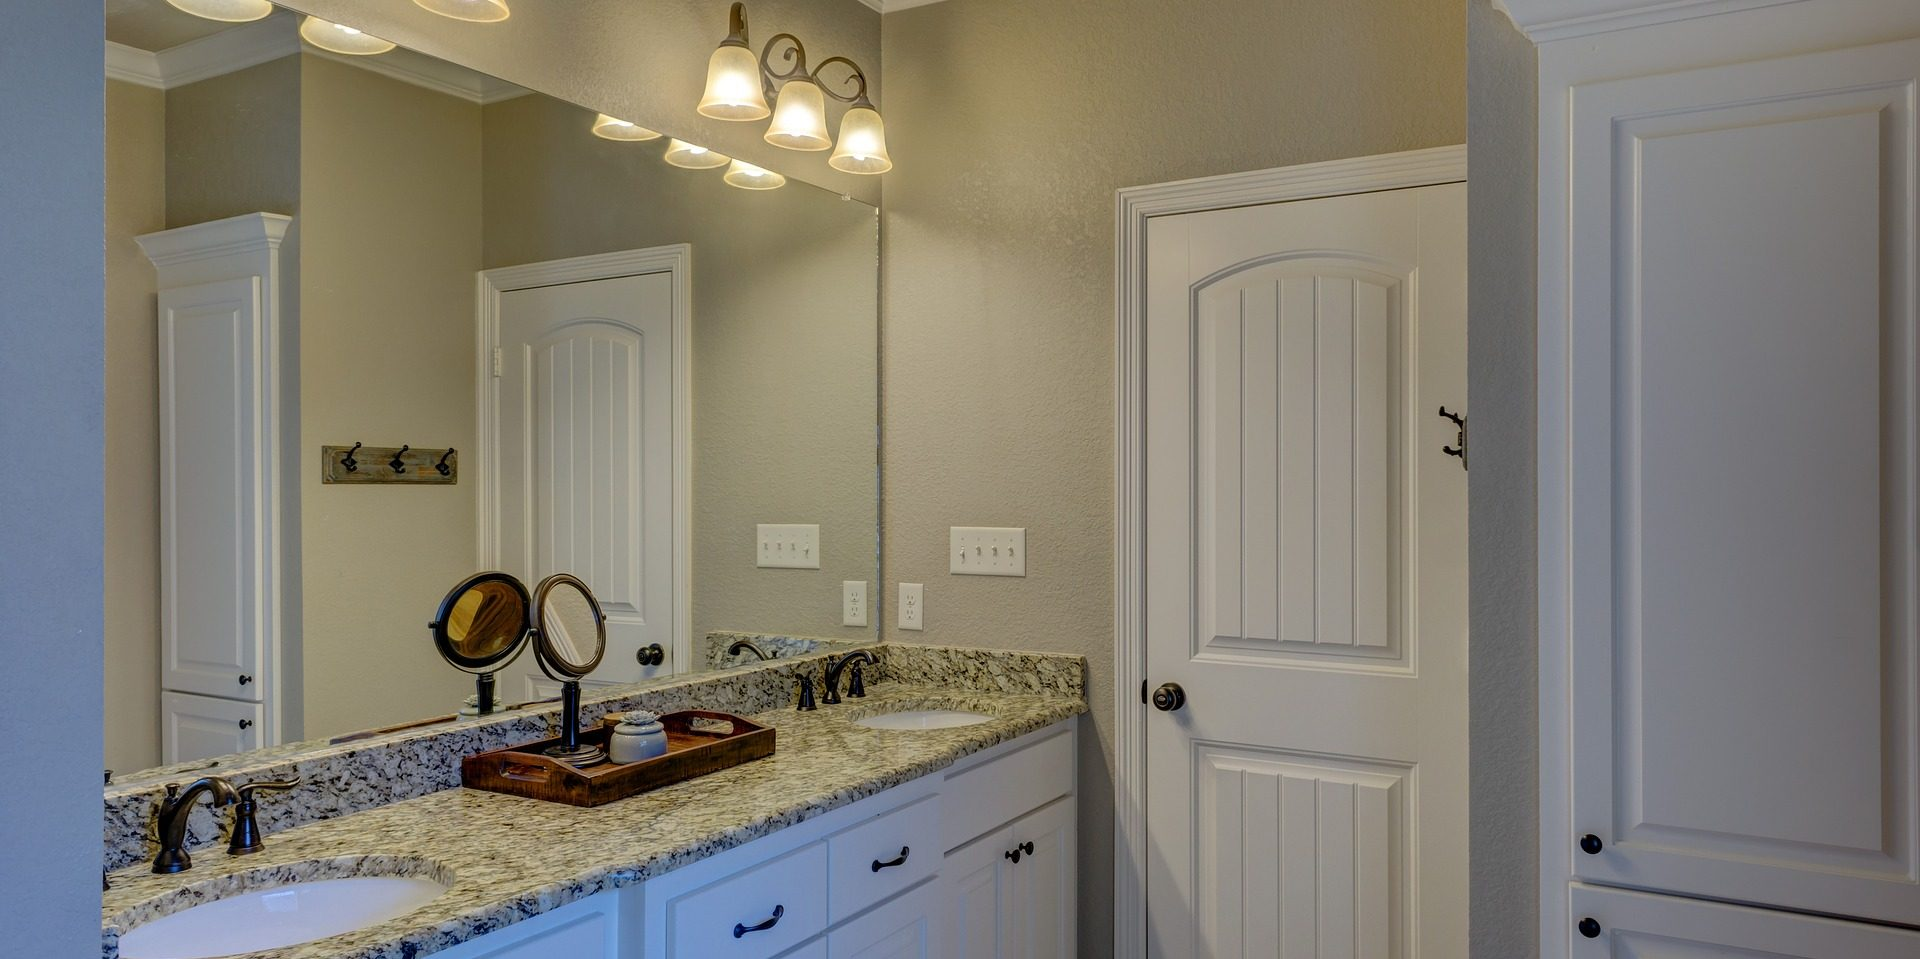 Kitchen And Bath Hartford Ct Lcn Kitchen And Bath Personalized Services To Meet Your